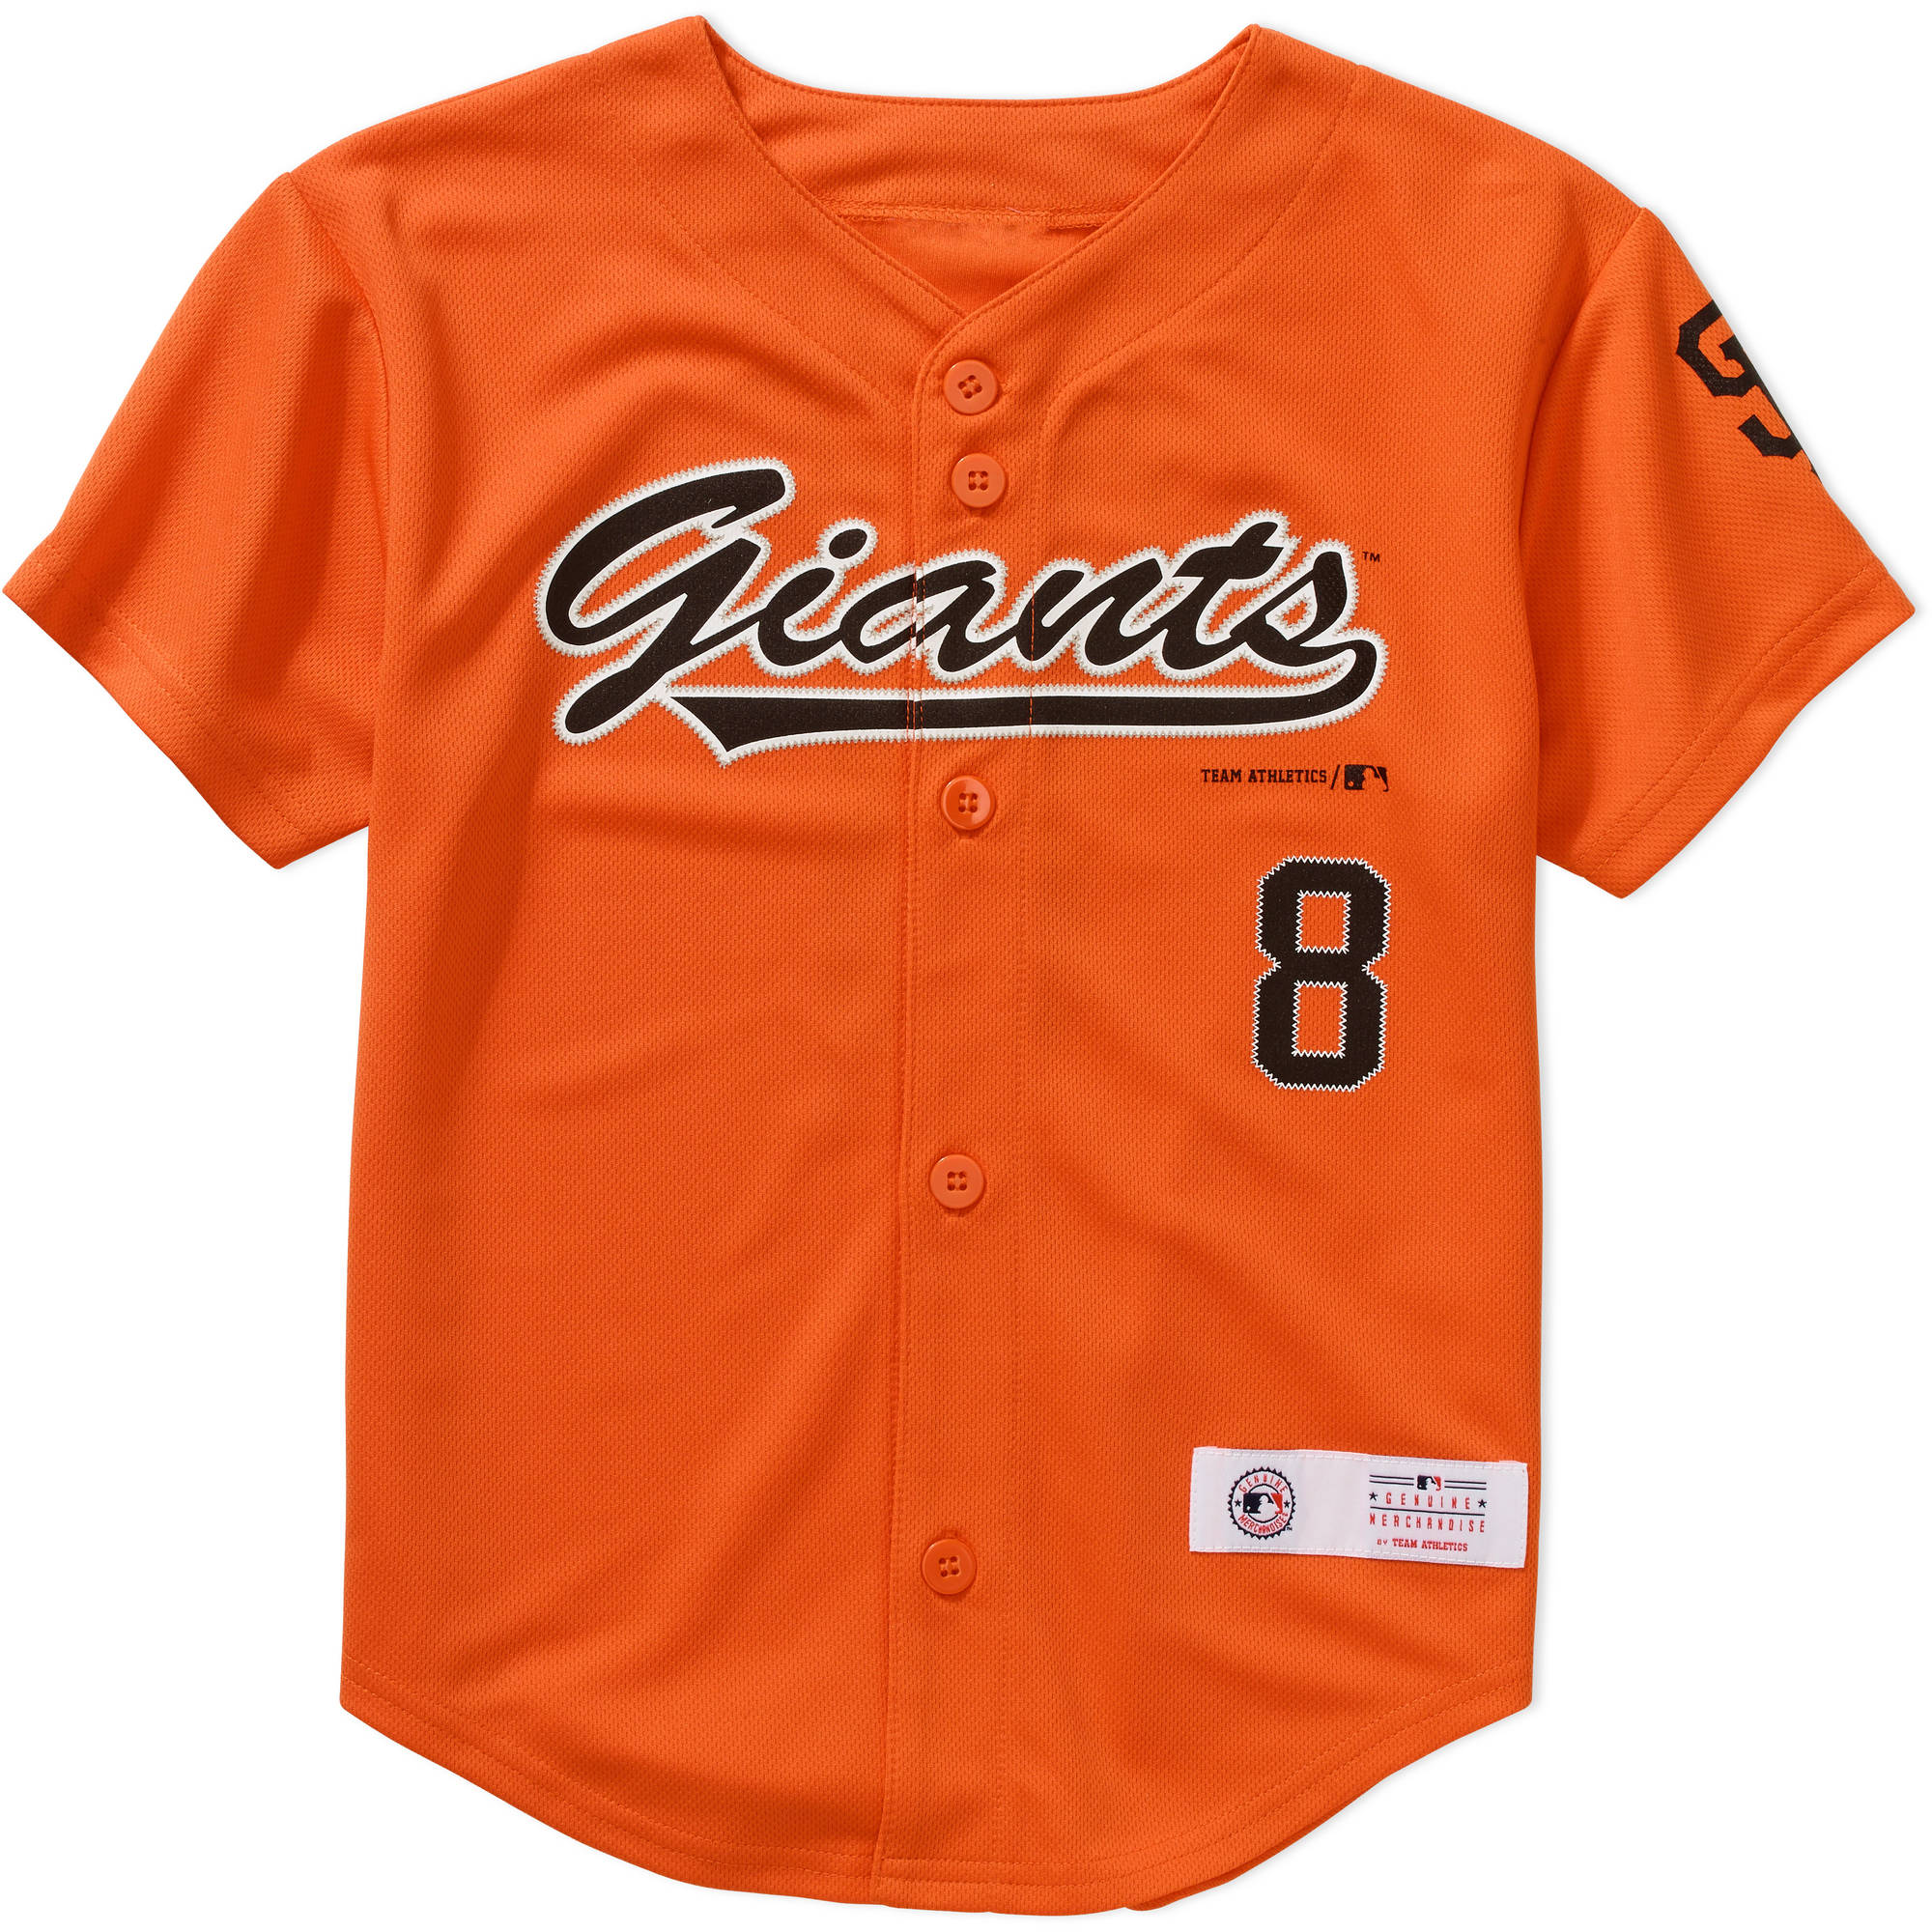 MLB Boys' San Francisco Giants H Pence #8 Jersey